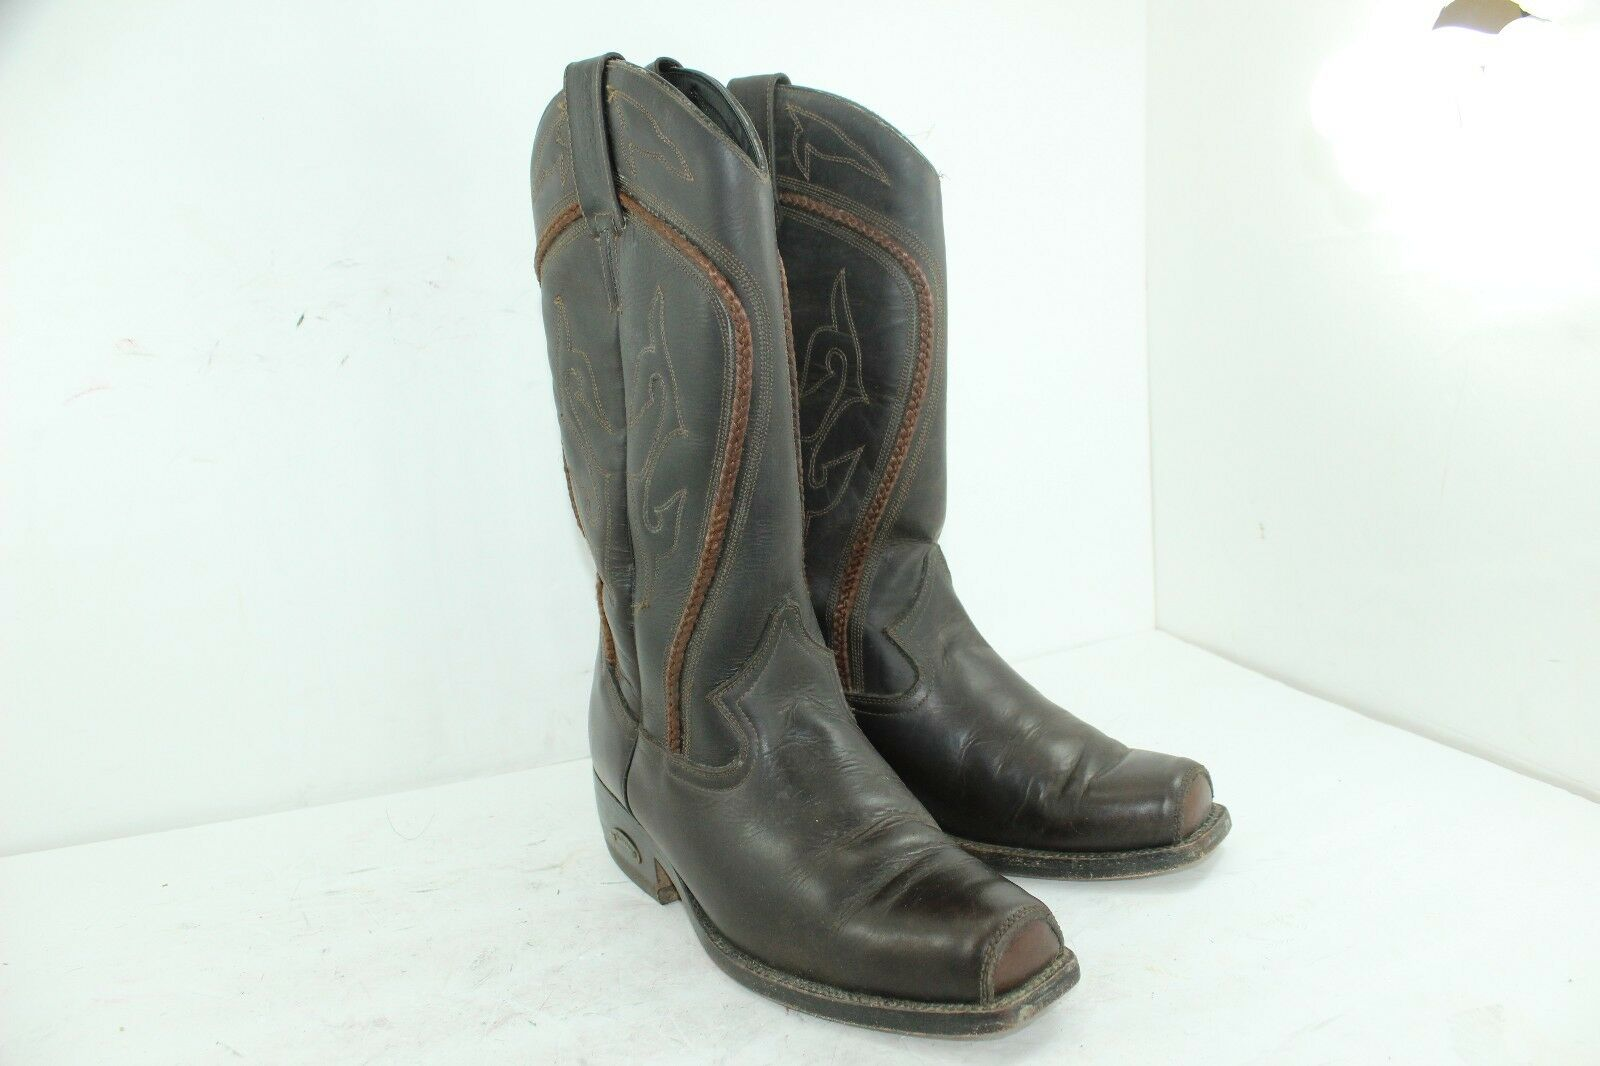 BOTERINE WOMEN'S BOOTS SIZE 9 BROWNS IN GREAT CONDITION MSRP 200